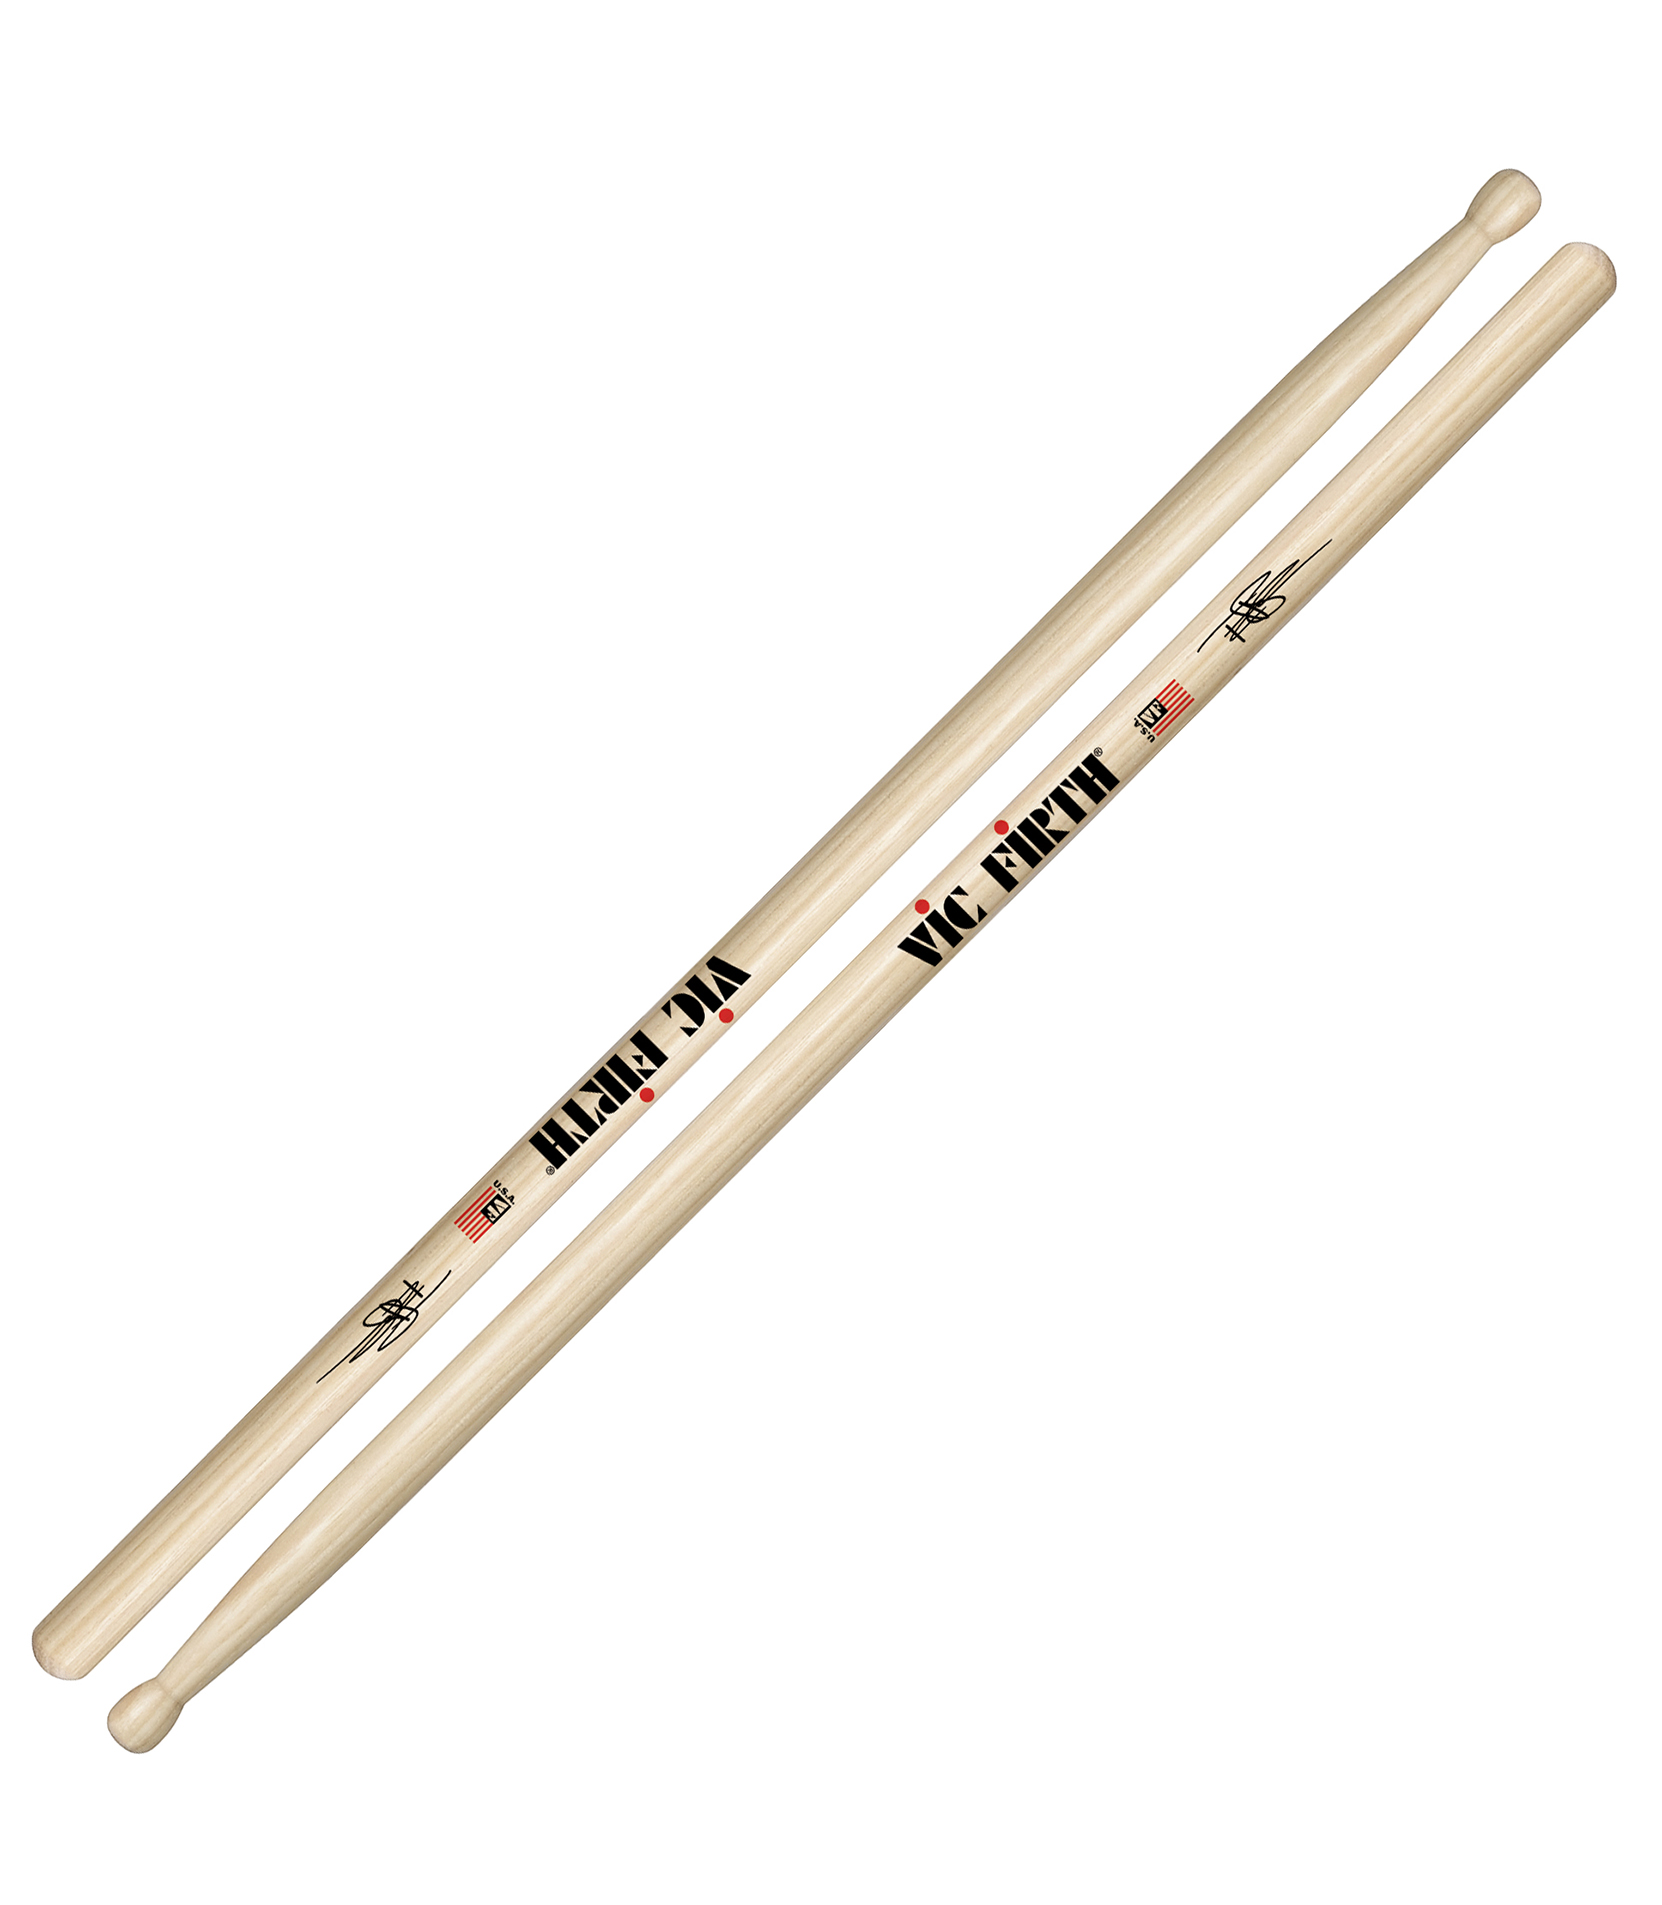 vicfirth - STB1 - Melody House Musical Instruments